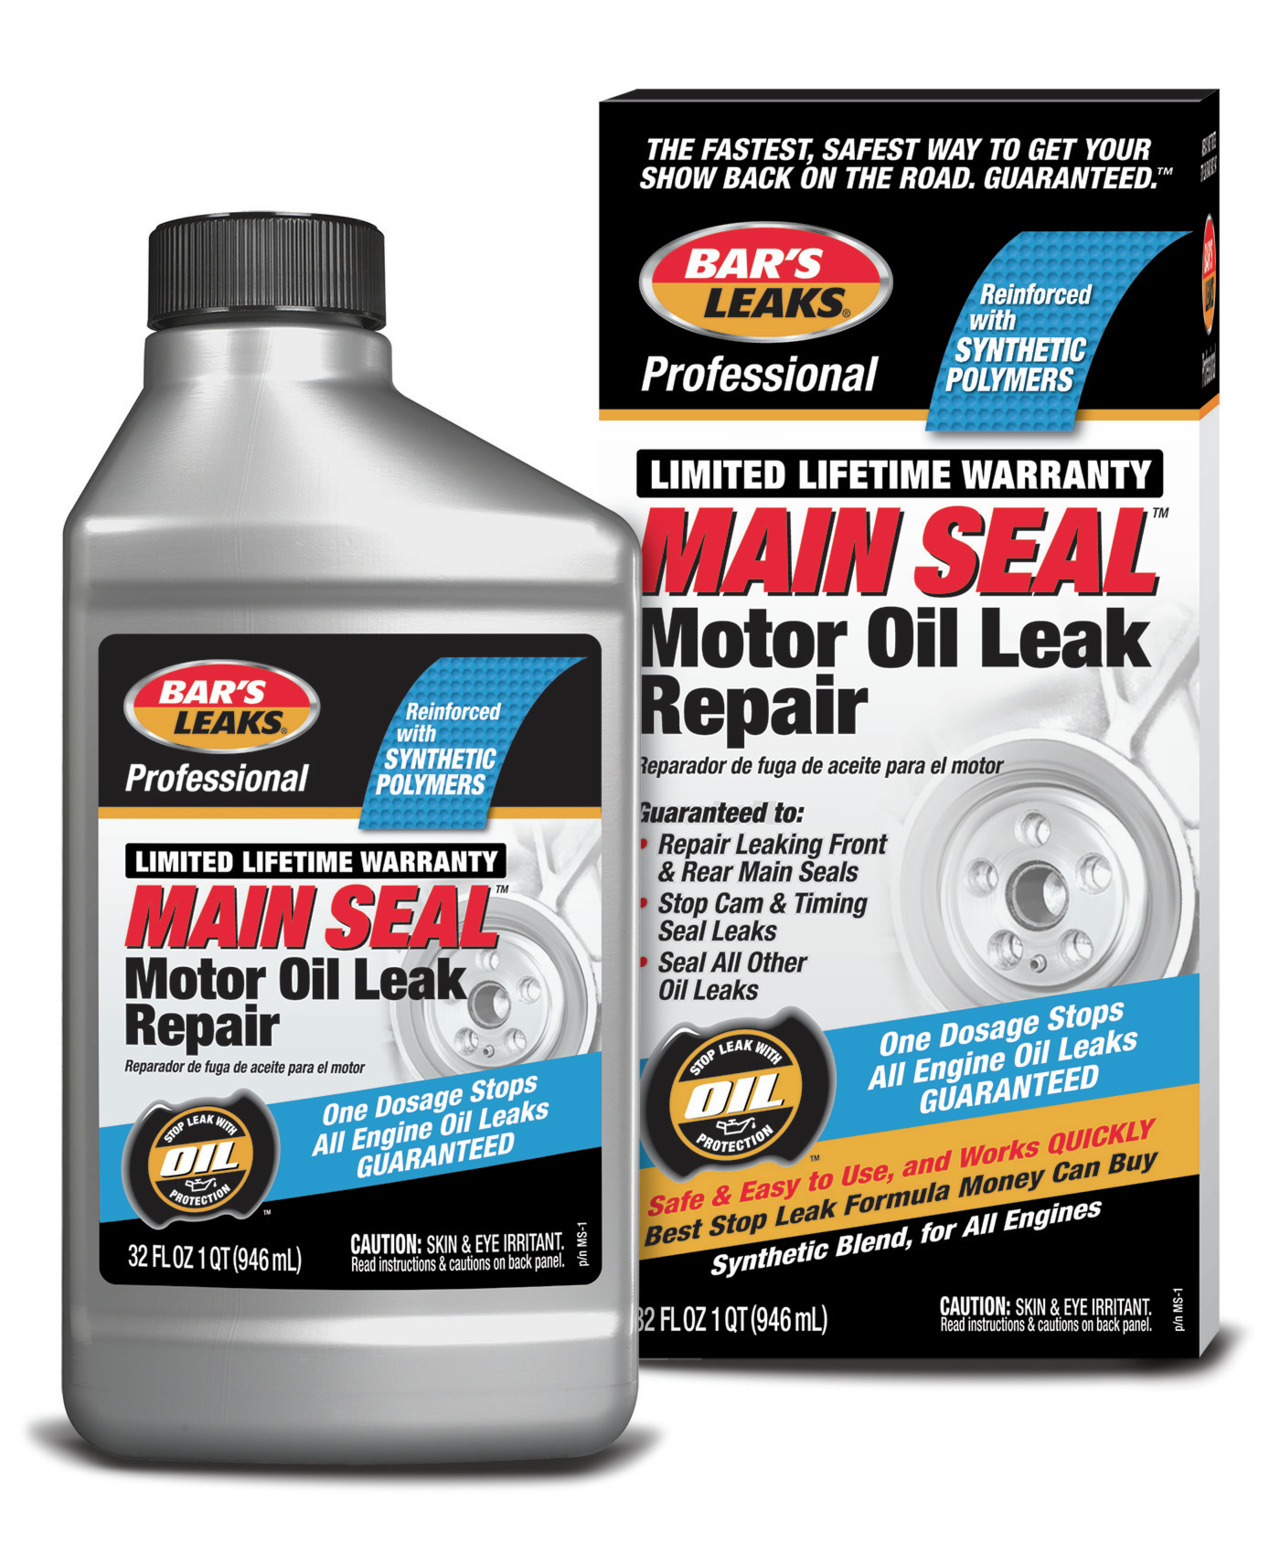 Oil Leak Repair >> Bar S Products Bar S Leaks Professional Main Seal Motor Oil Leak